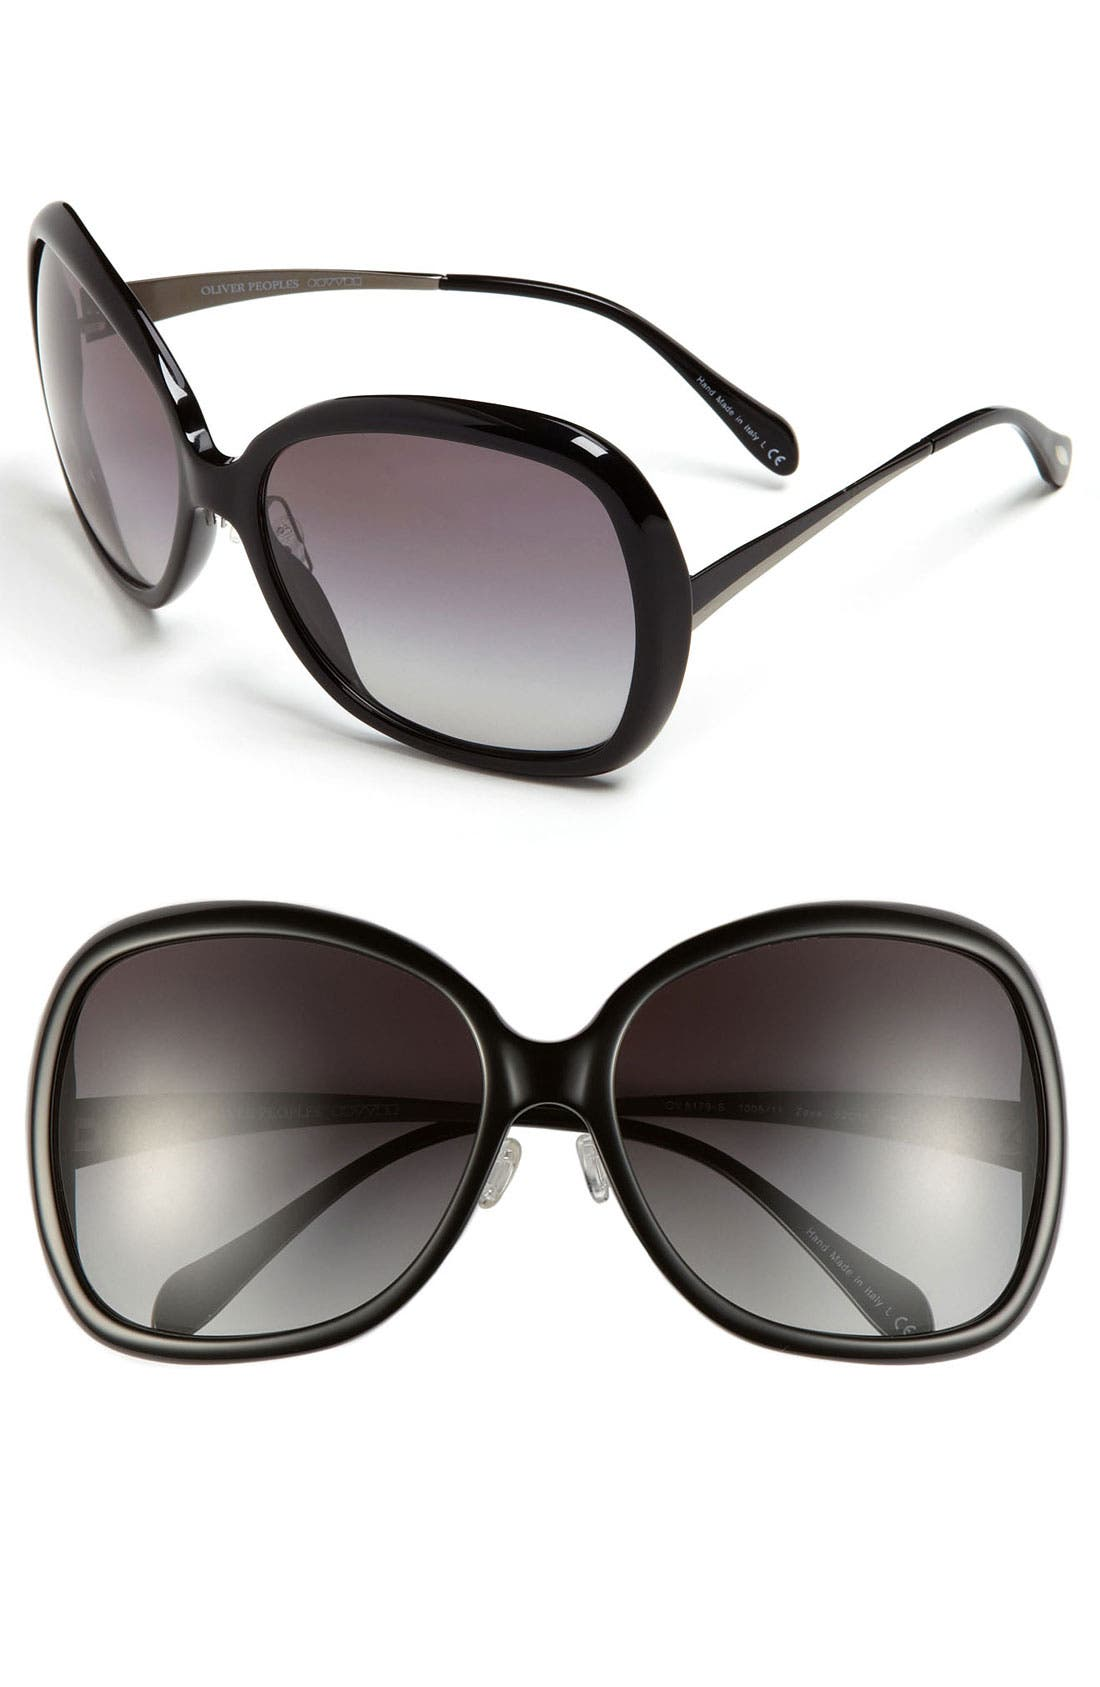 Main Image - Oliver Peoples 62mm Special Fit Sunglasses